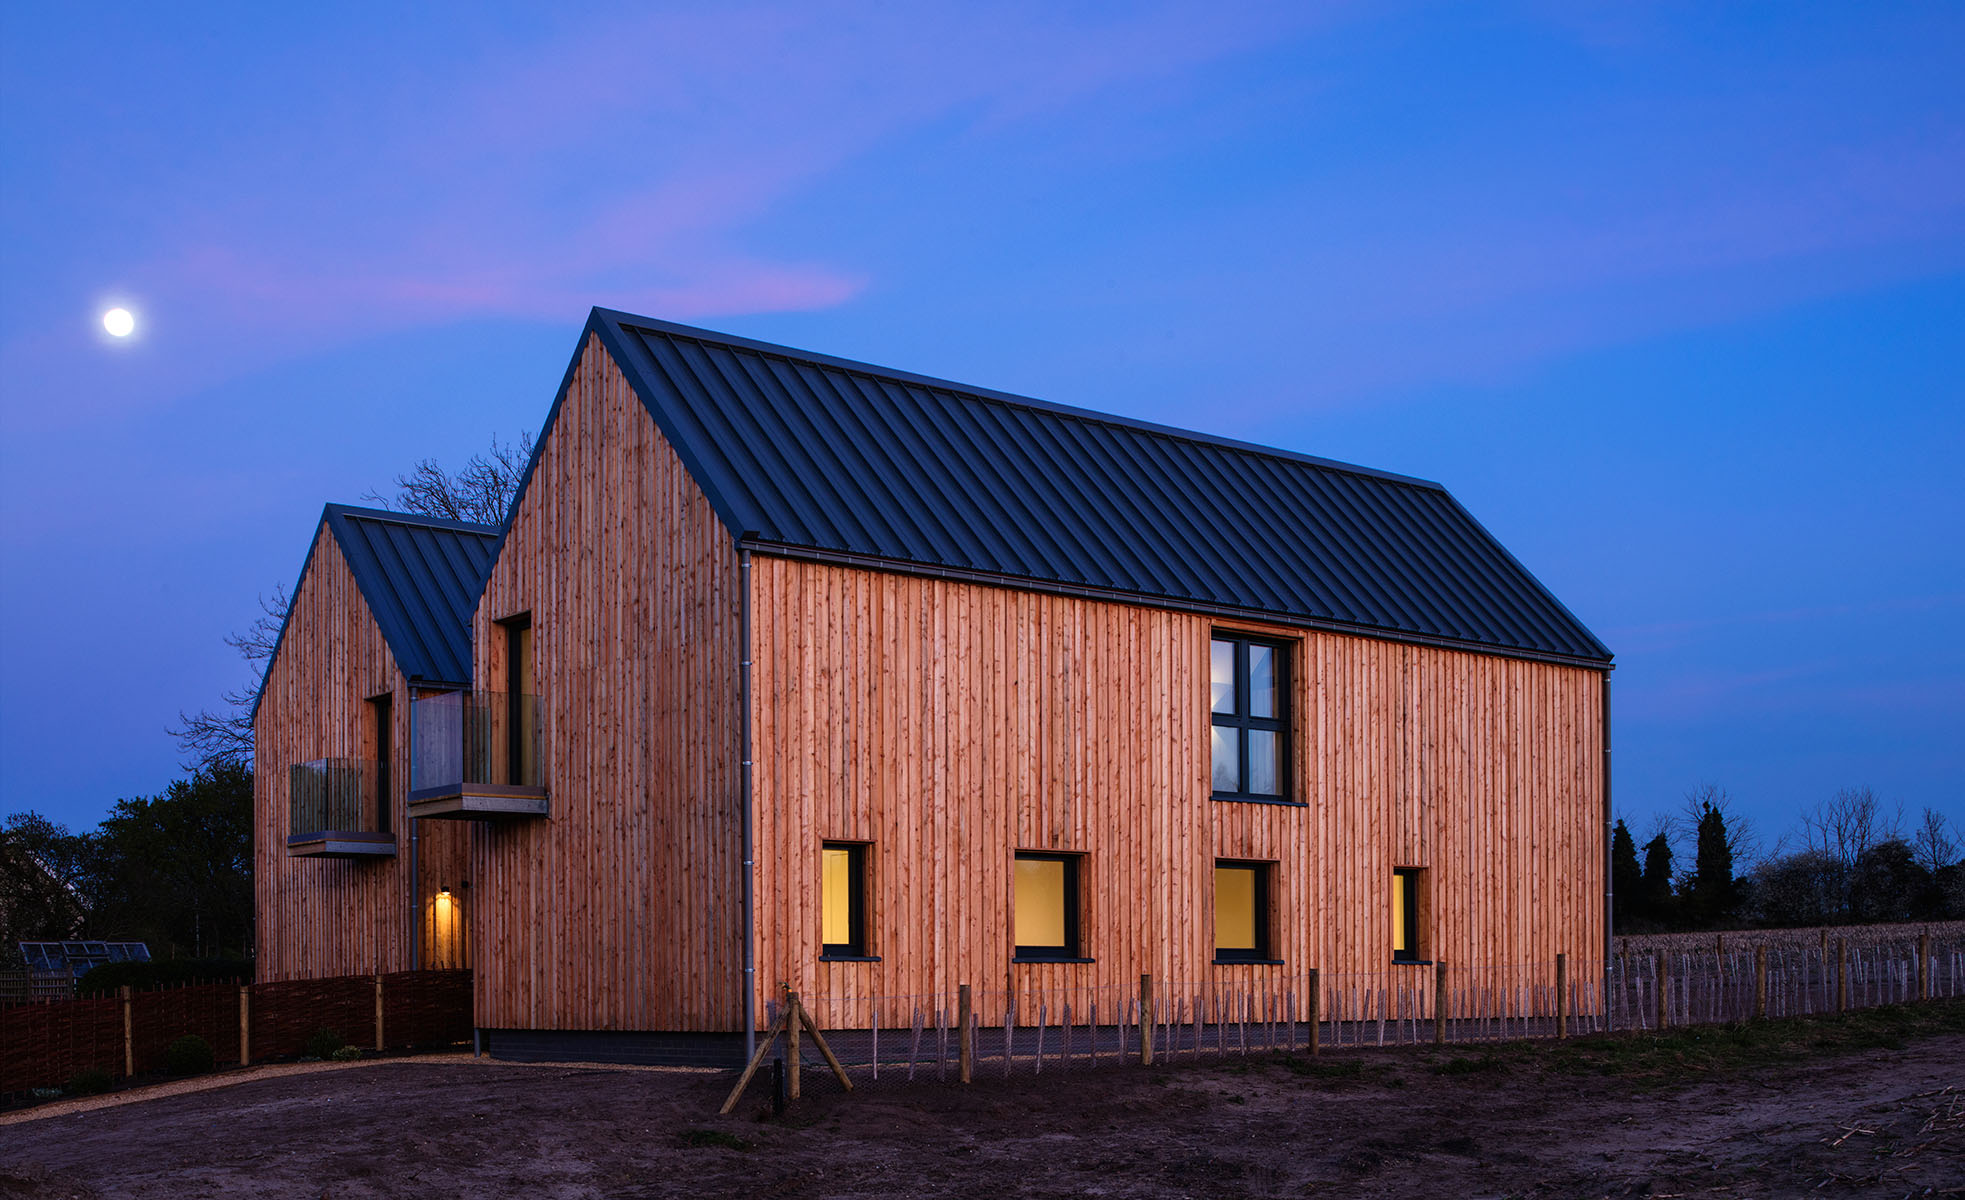 Two neighboring low energy houses built to Passivhaus design principles in arable land in Area of Outstanding Natural Beauty near the Suffolk coastline.  Client: Greentithe / BLDA